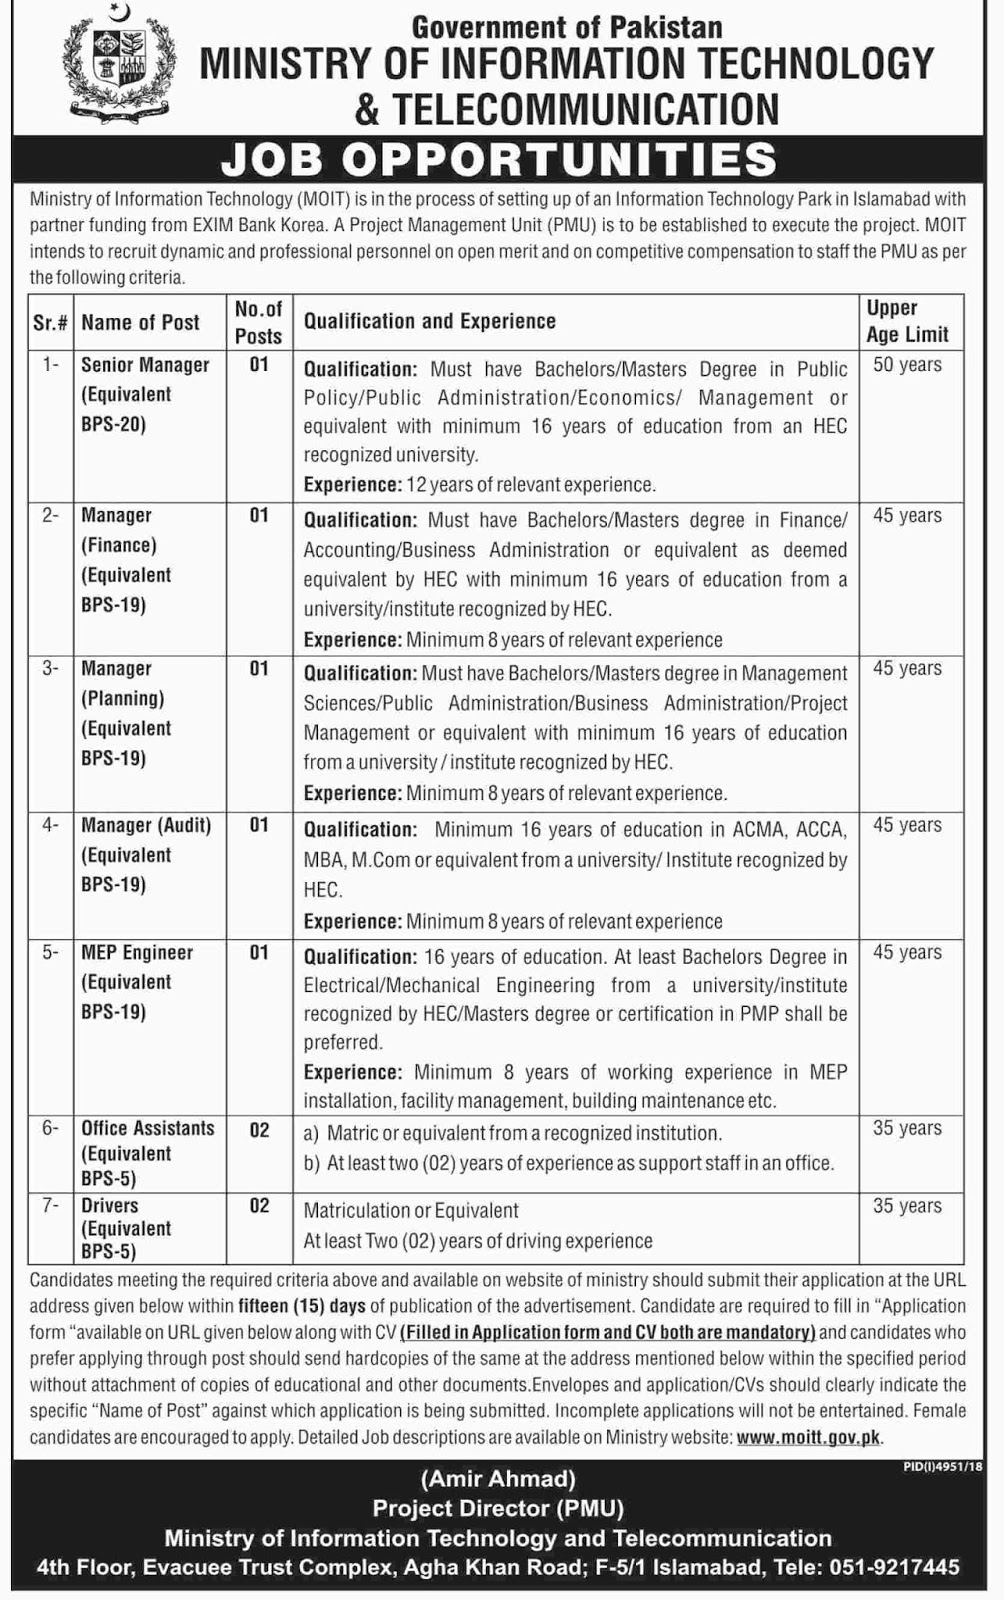 Ministry Of Information Technology Jobs 2019 by Govt Of Pakistan